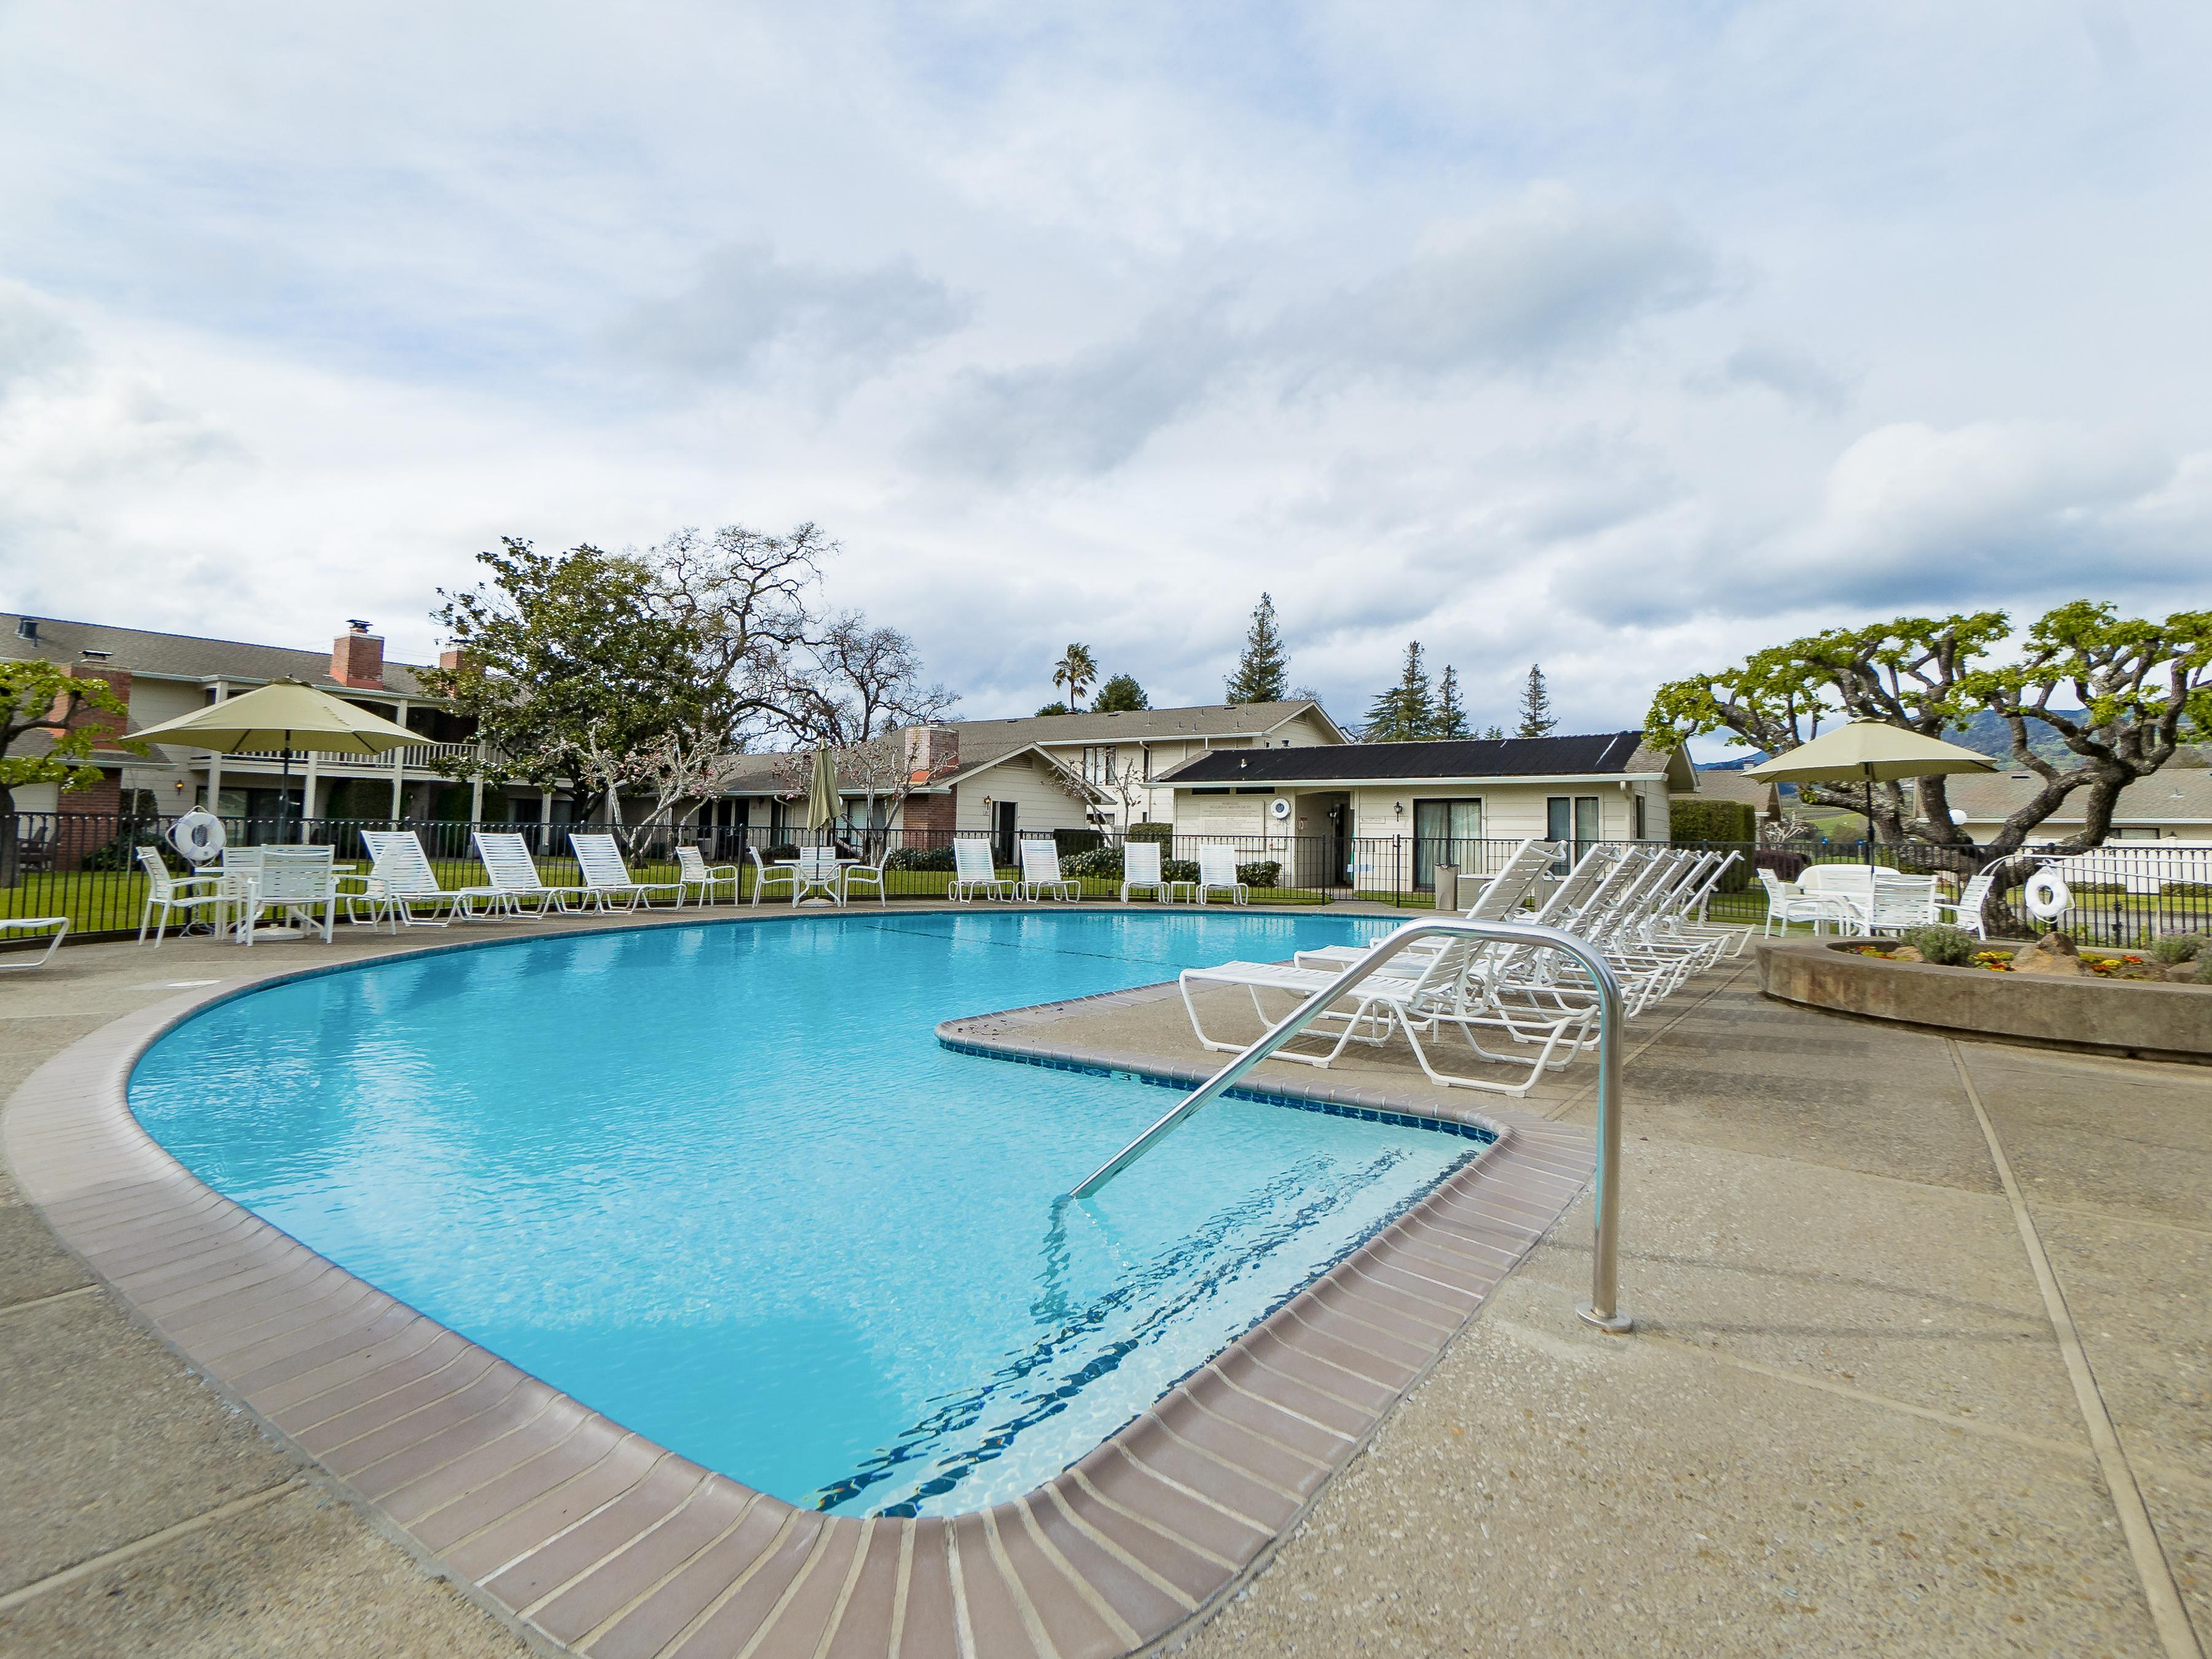 The seasonal heated pool is open from Memorial Day to Labor Day.